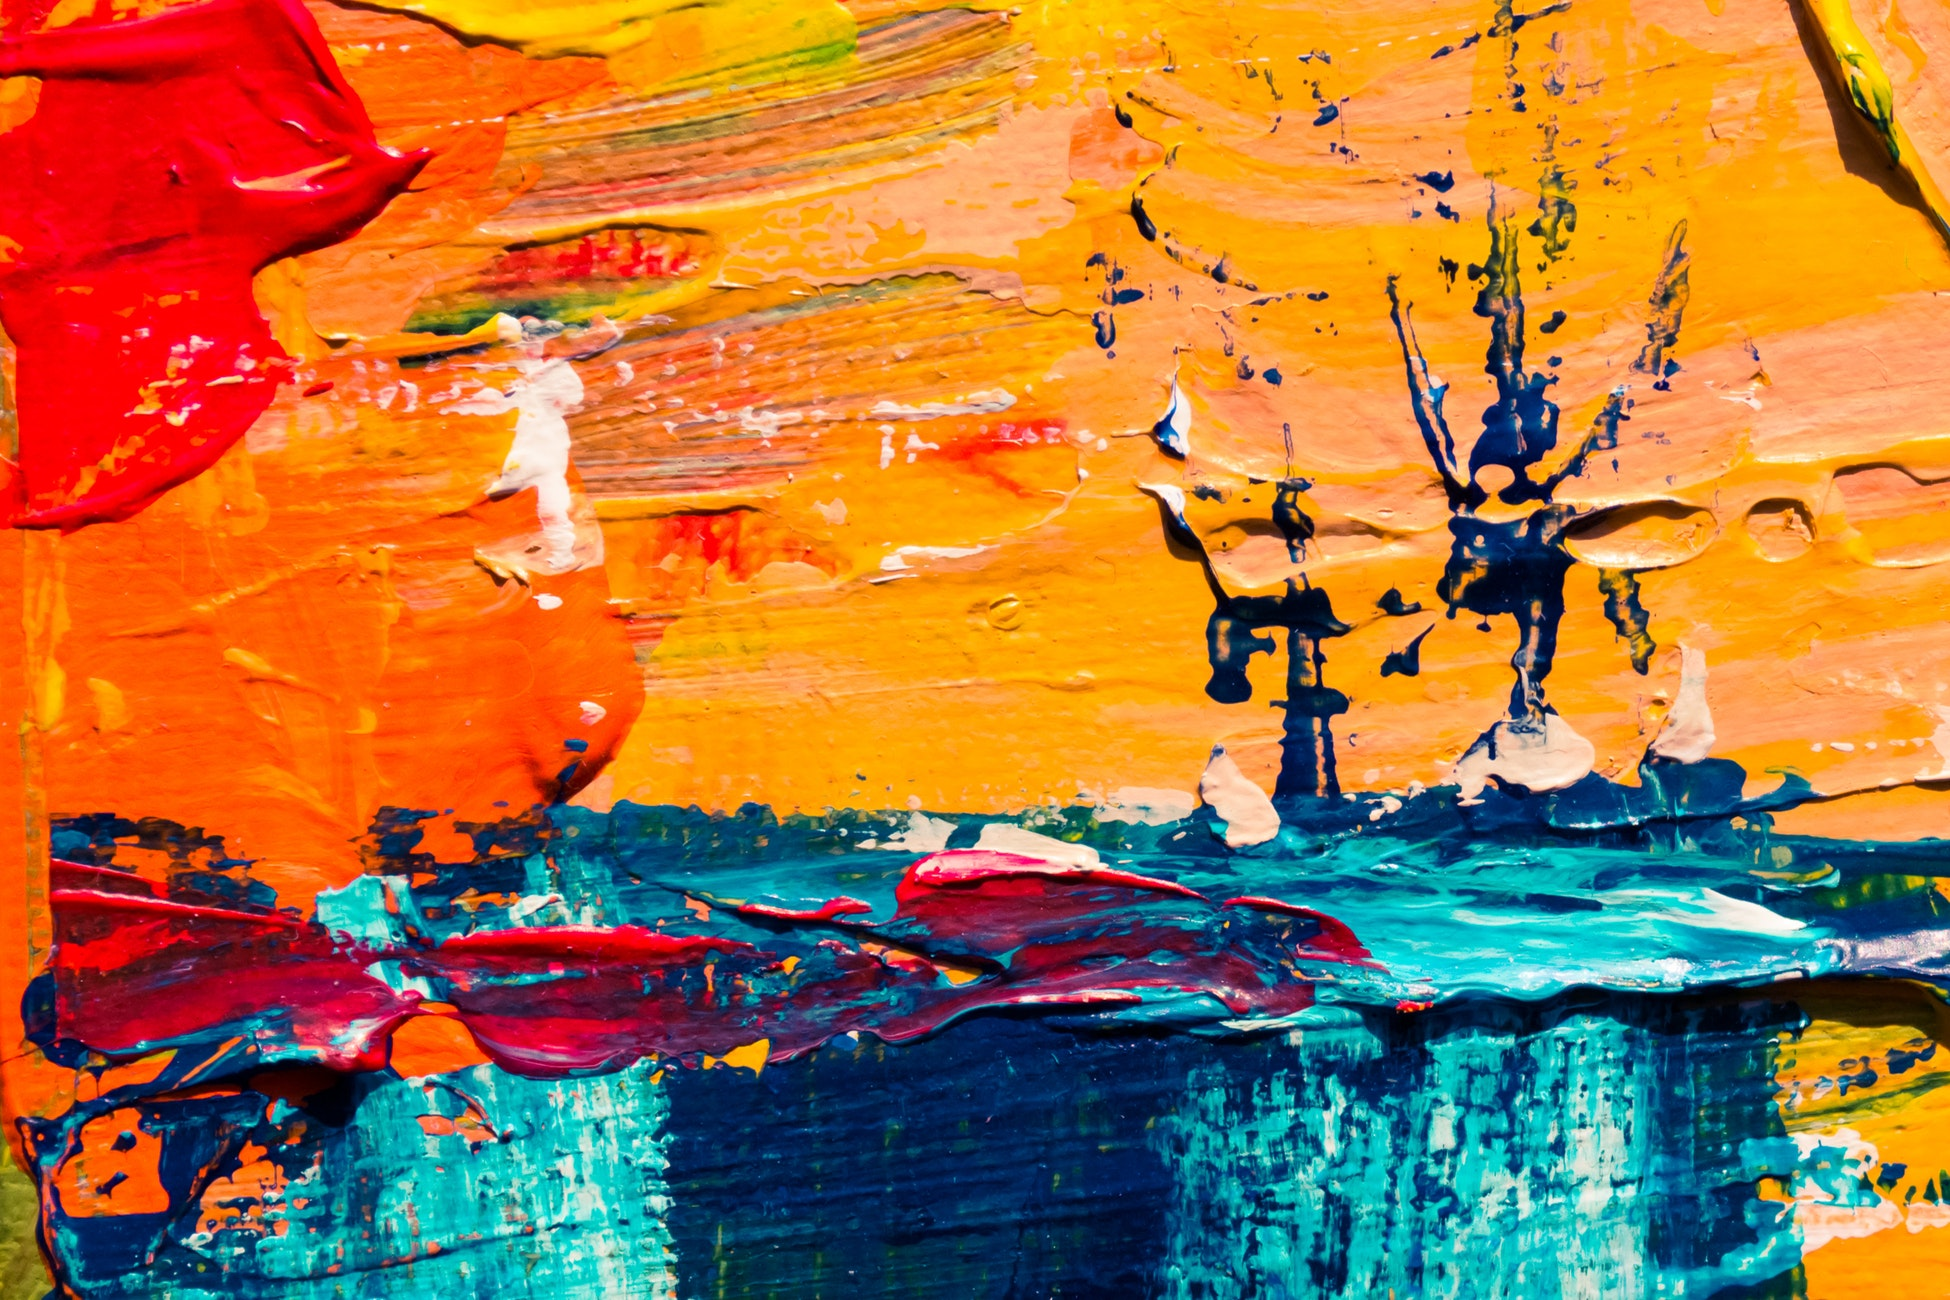 Abstract canvas art with red, orange, yellow, and blue on canvas. Oil on canvas.